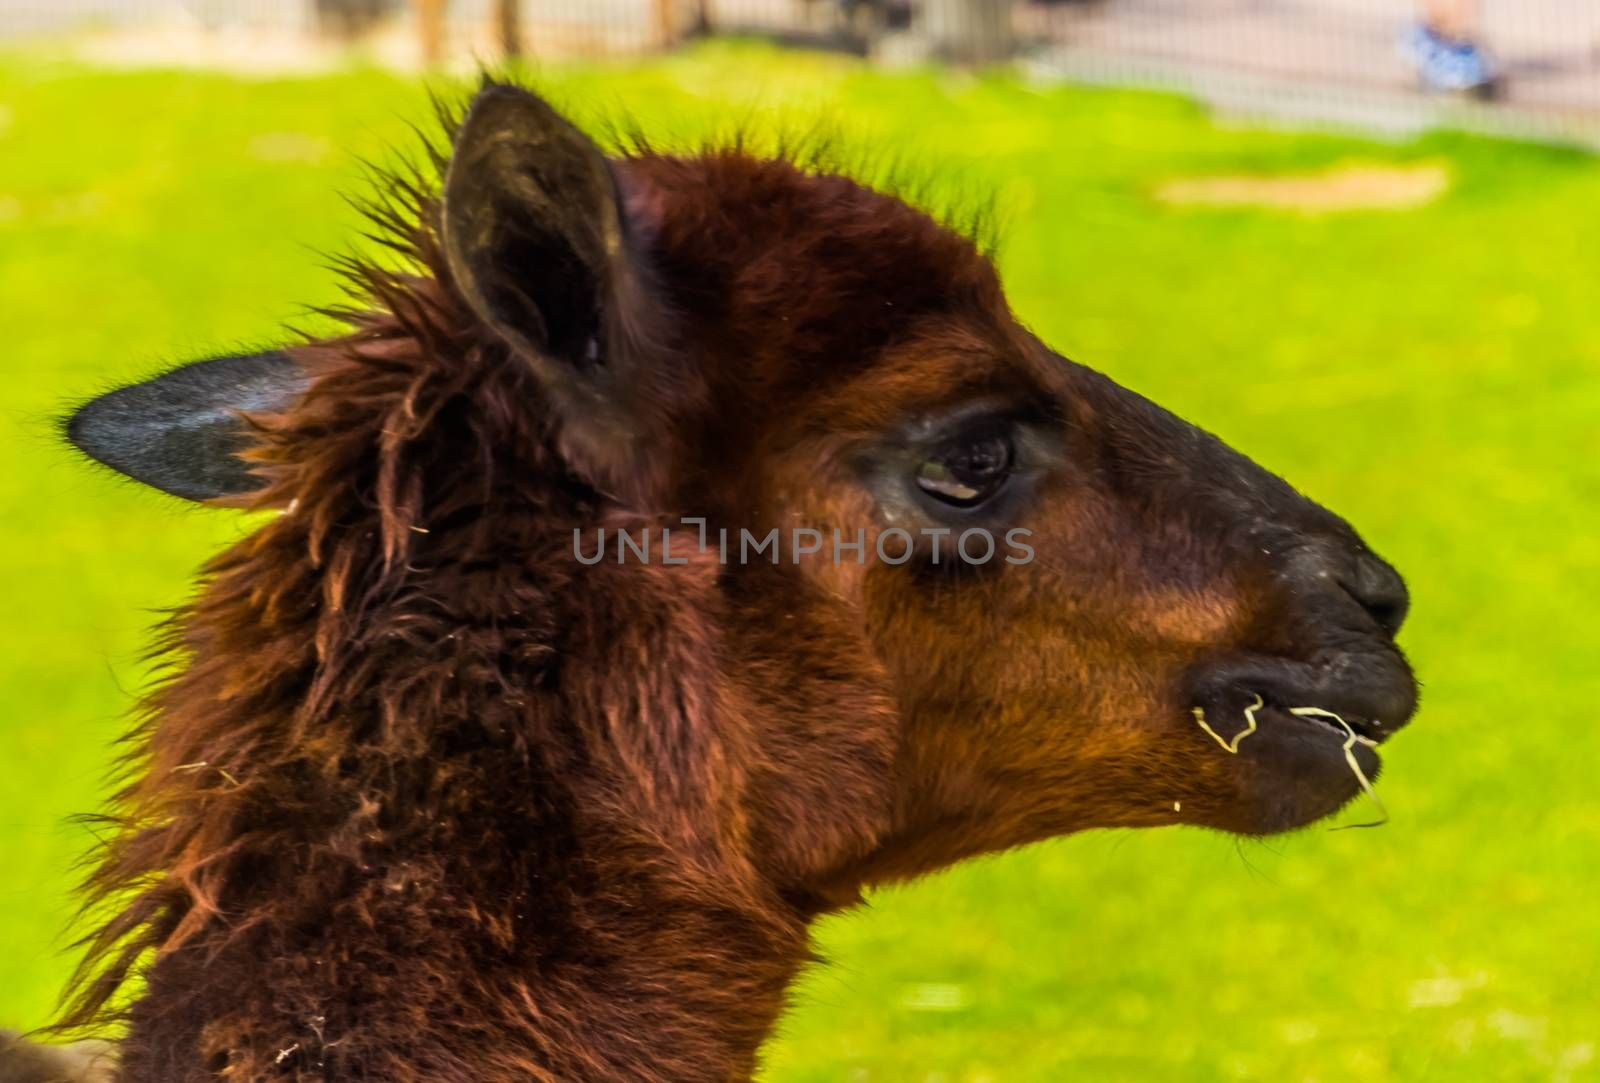 Closeup of the face of a brown alpaca chewing on some hay, popular pets on the animal farm